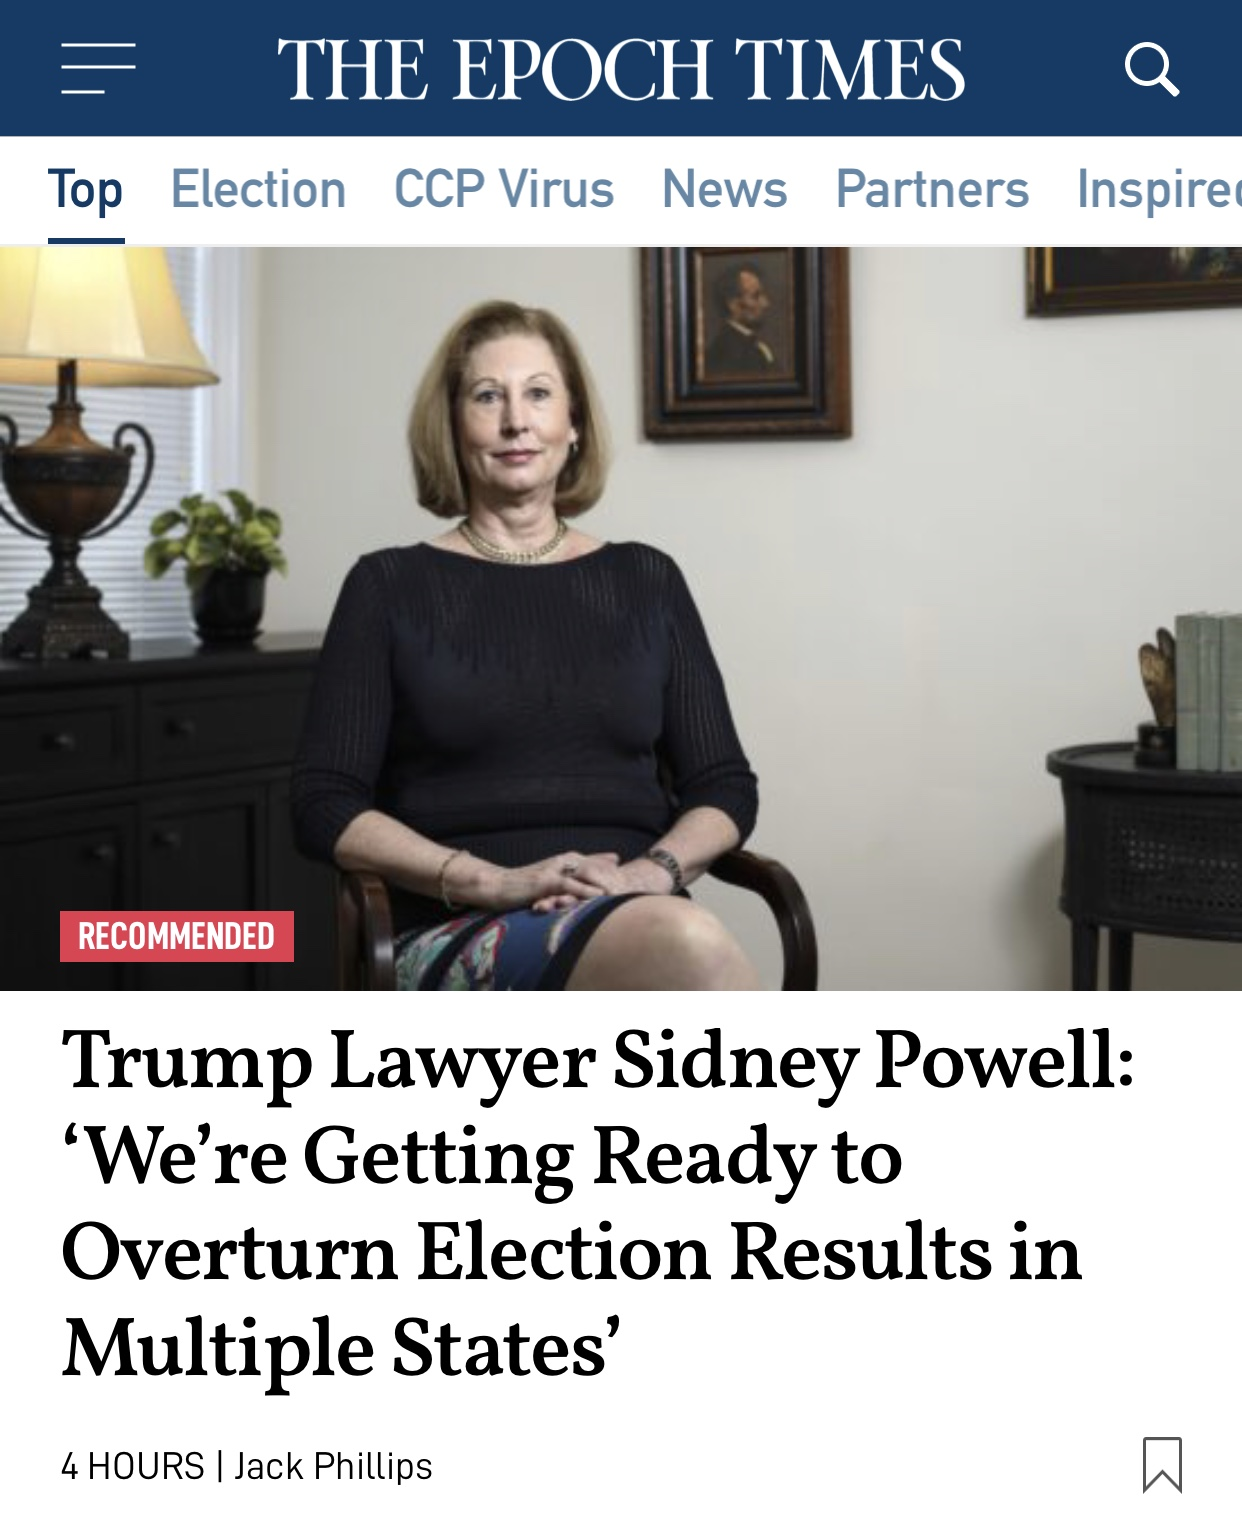 Trump Lawyer Sidney Powell: 'We're Getting Ready to Overturn Election Results in Multiple States'